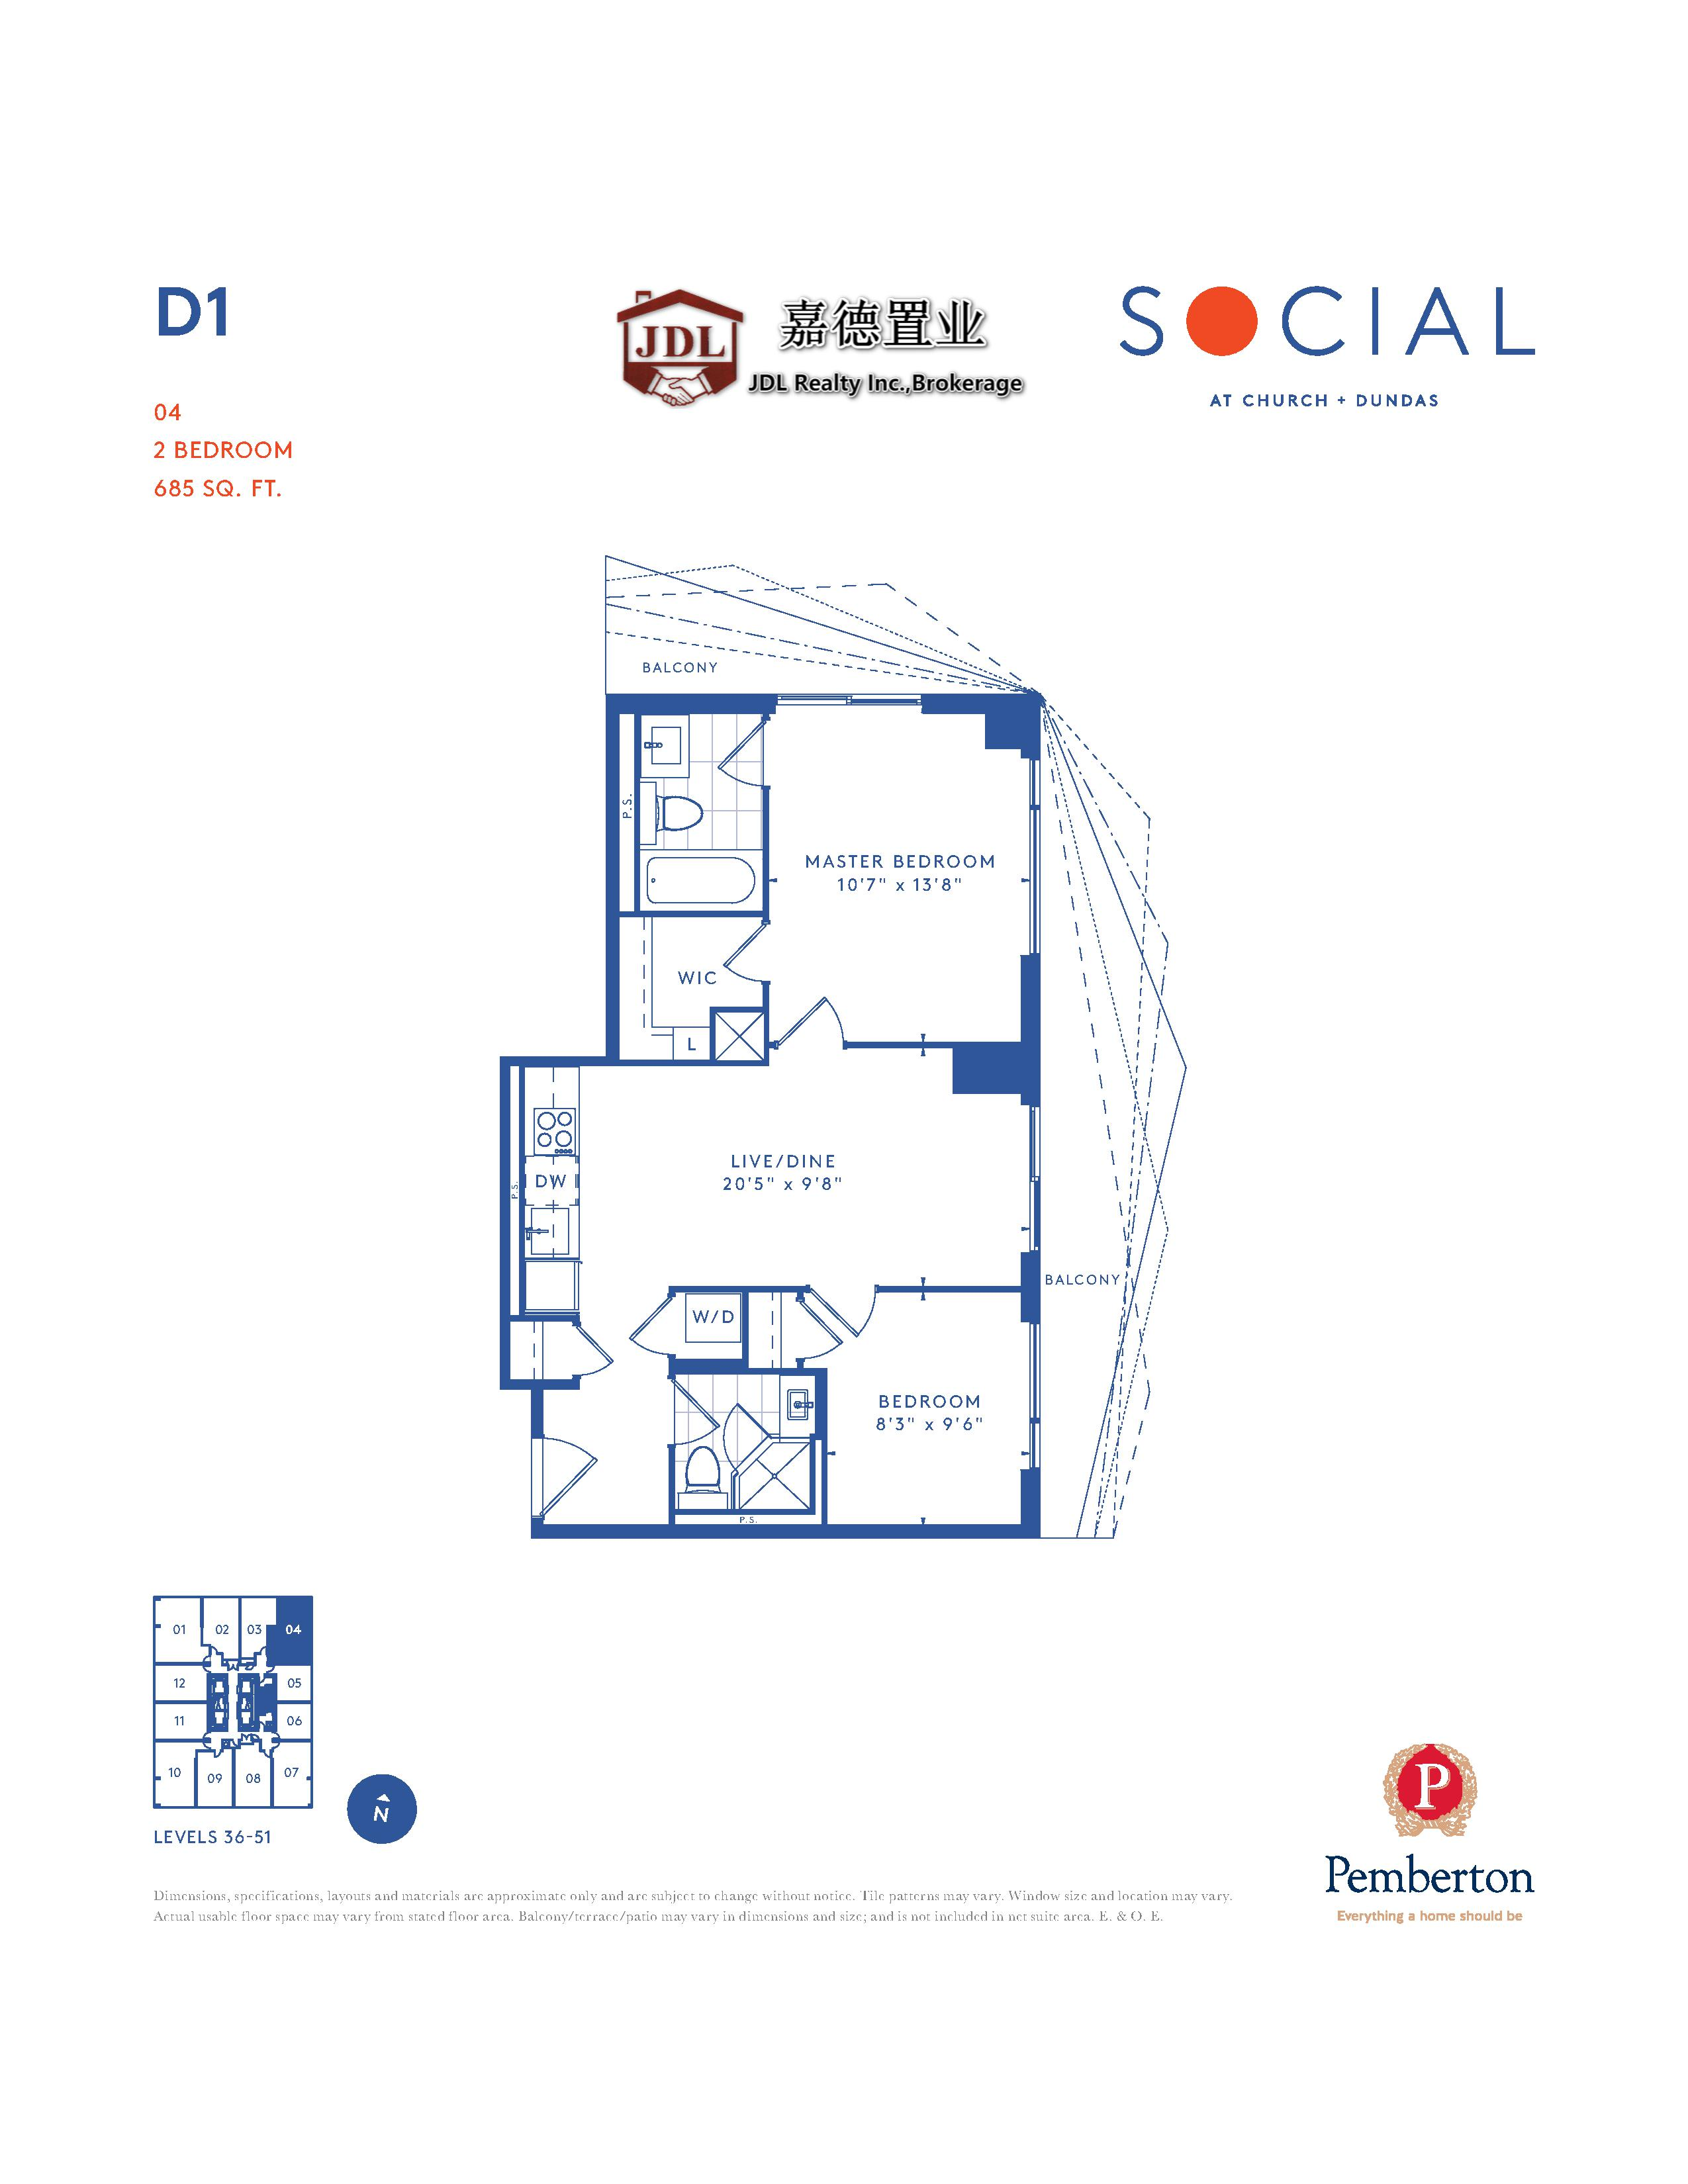 Social Tower floor plan 1 5